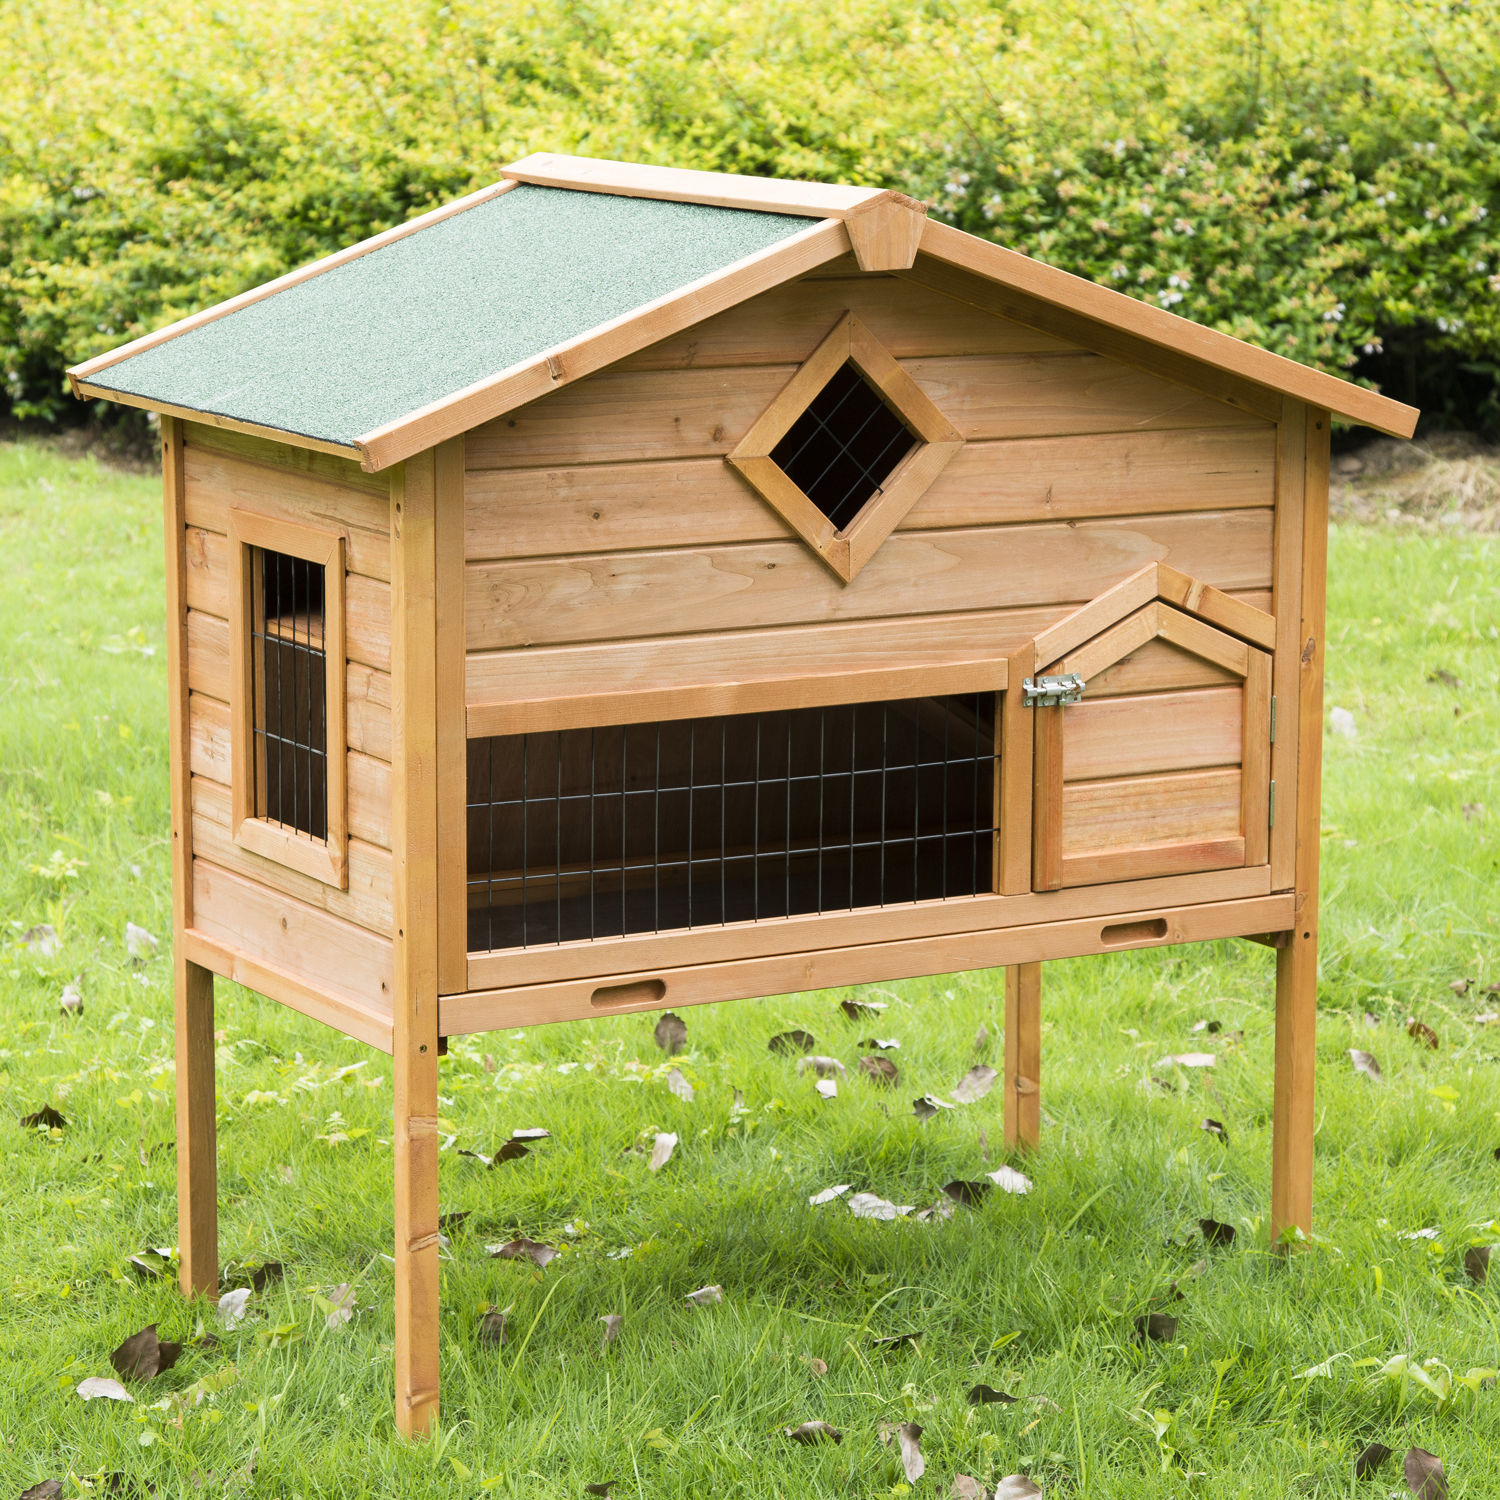 bunny of brown xl rabbit for your hutch chicken hutches fulfilled requirement good bunnyxlfeltedbrown